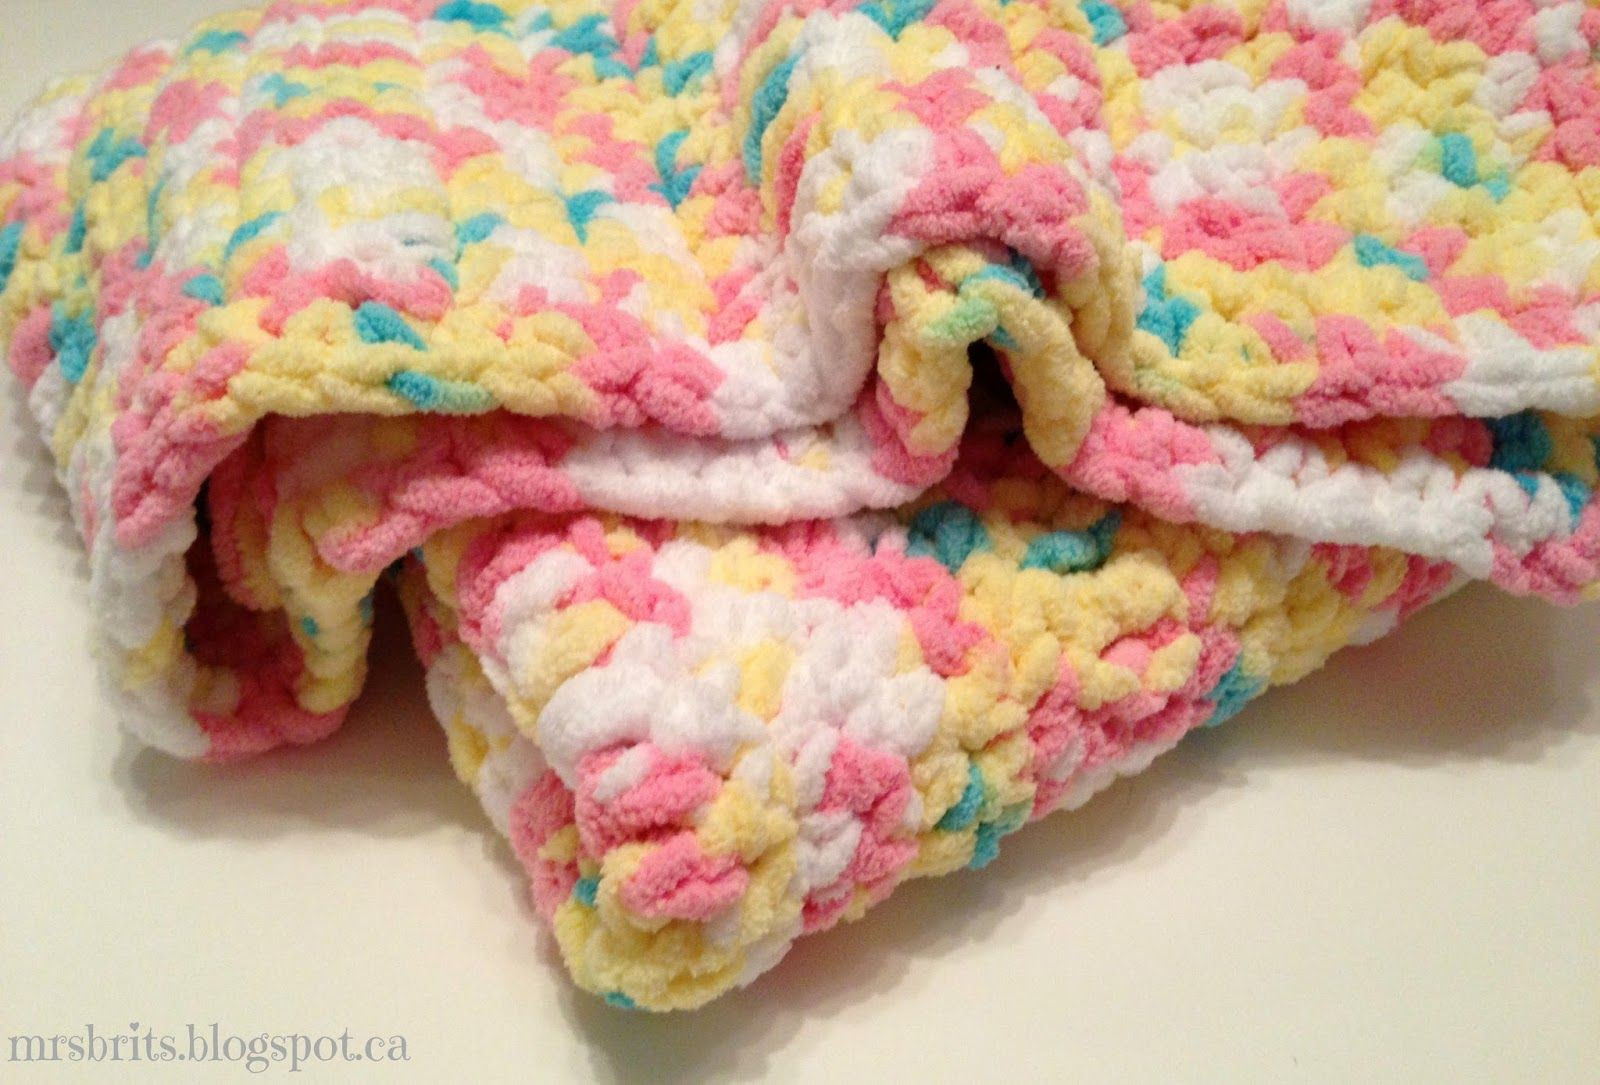 Bulky Yarn Afghan Patterns Inspirational Crochet A Circle Blanket with Super Bulky Yarn Of Innovative 43 Ideas Bulky Yarn Afghan Patterns